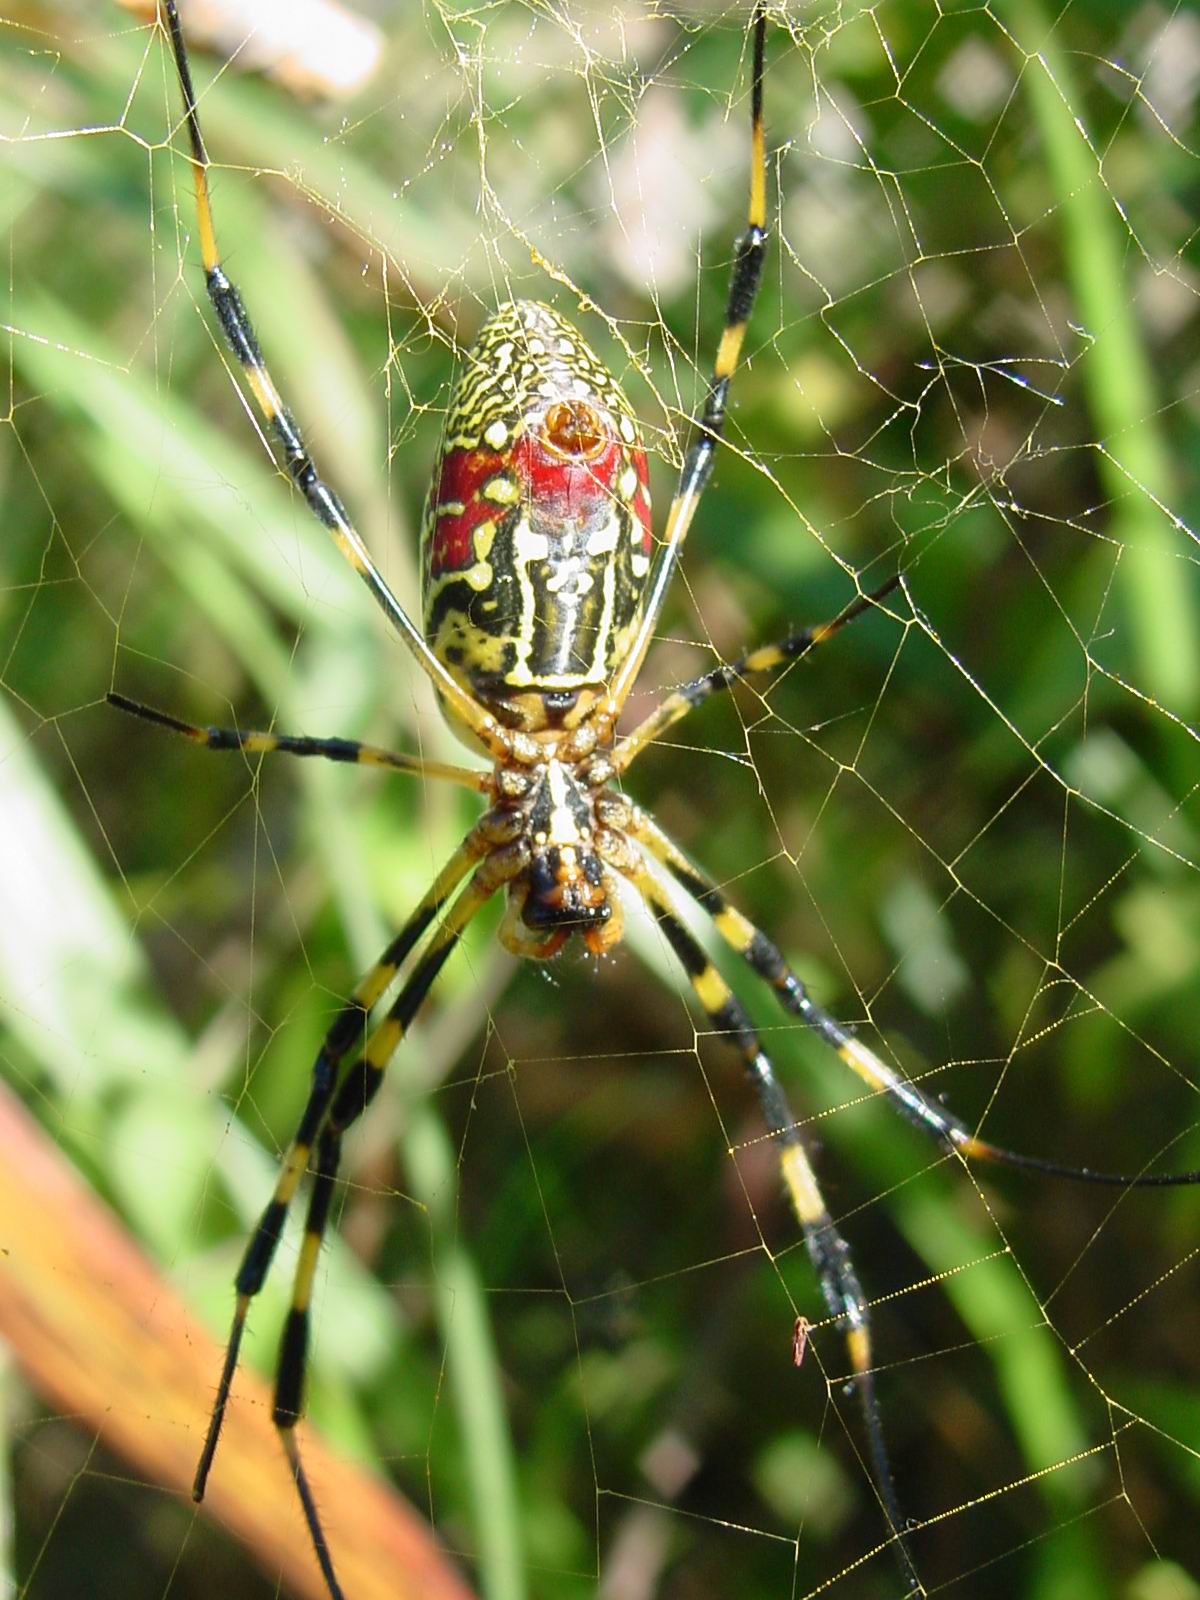 EvenMoreGigantic Giant Orb Spider Discovered  WIRED